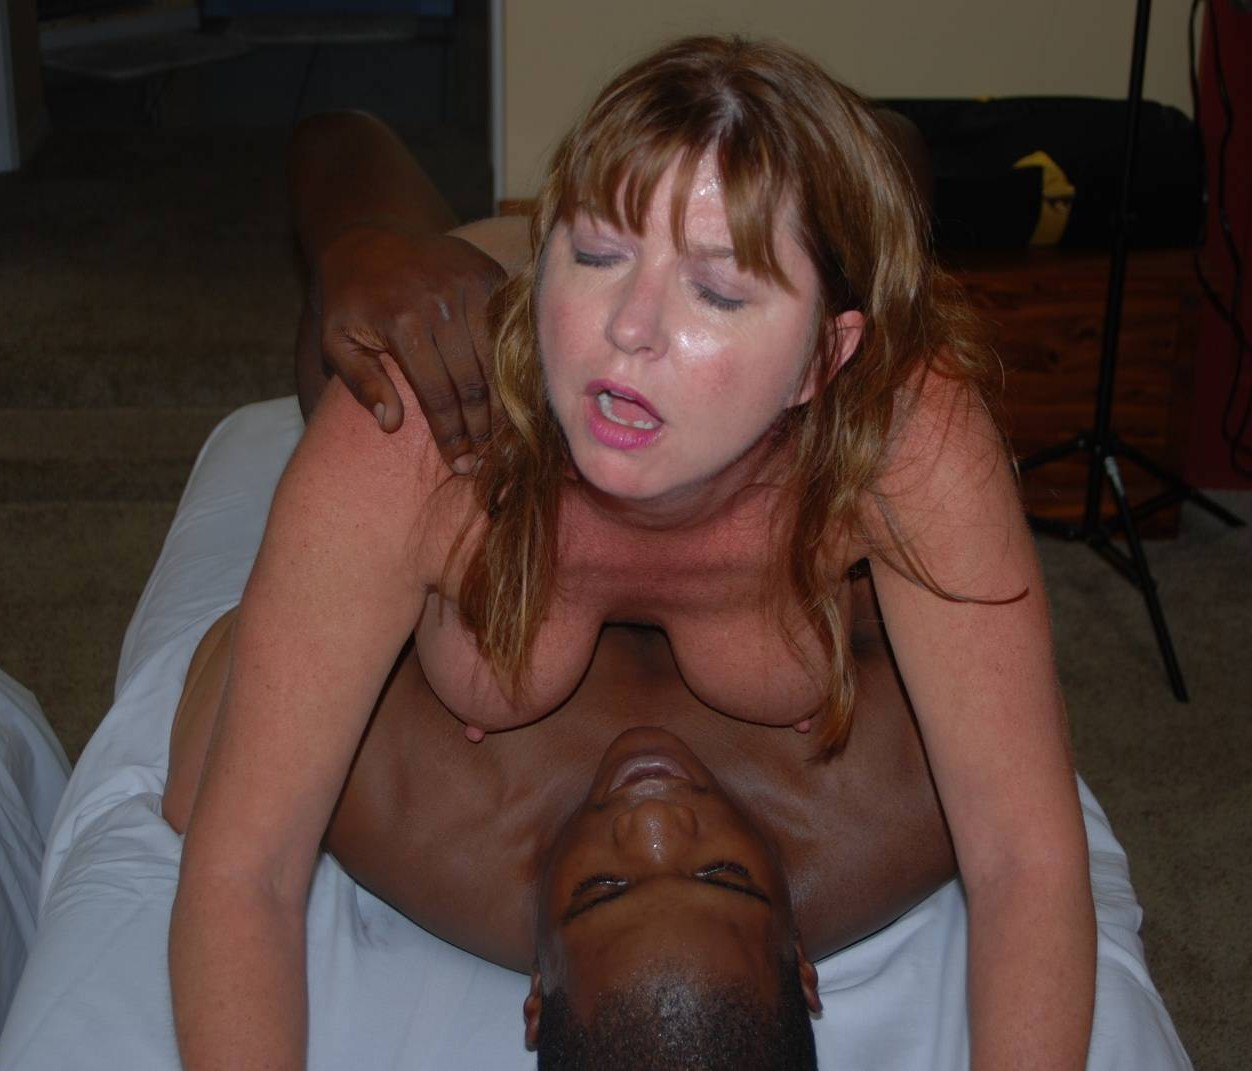 Black bitches licking pussy